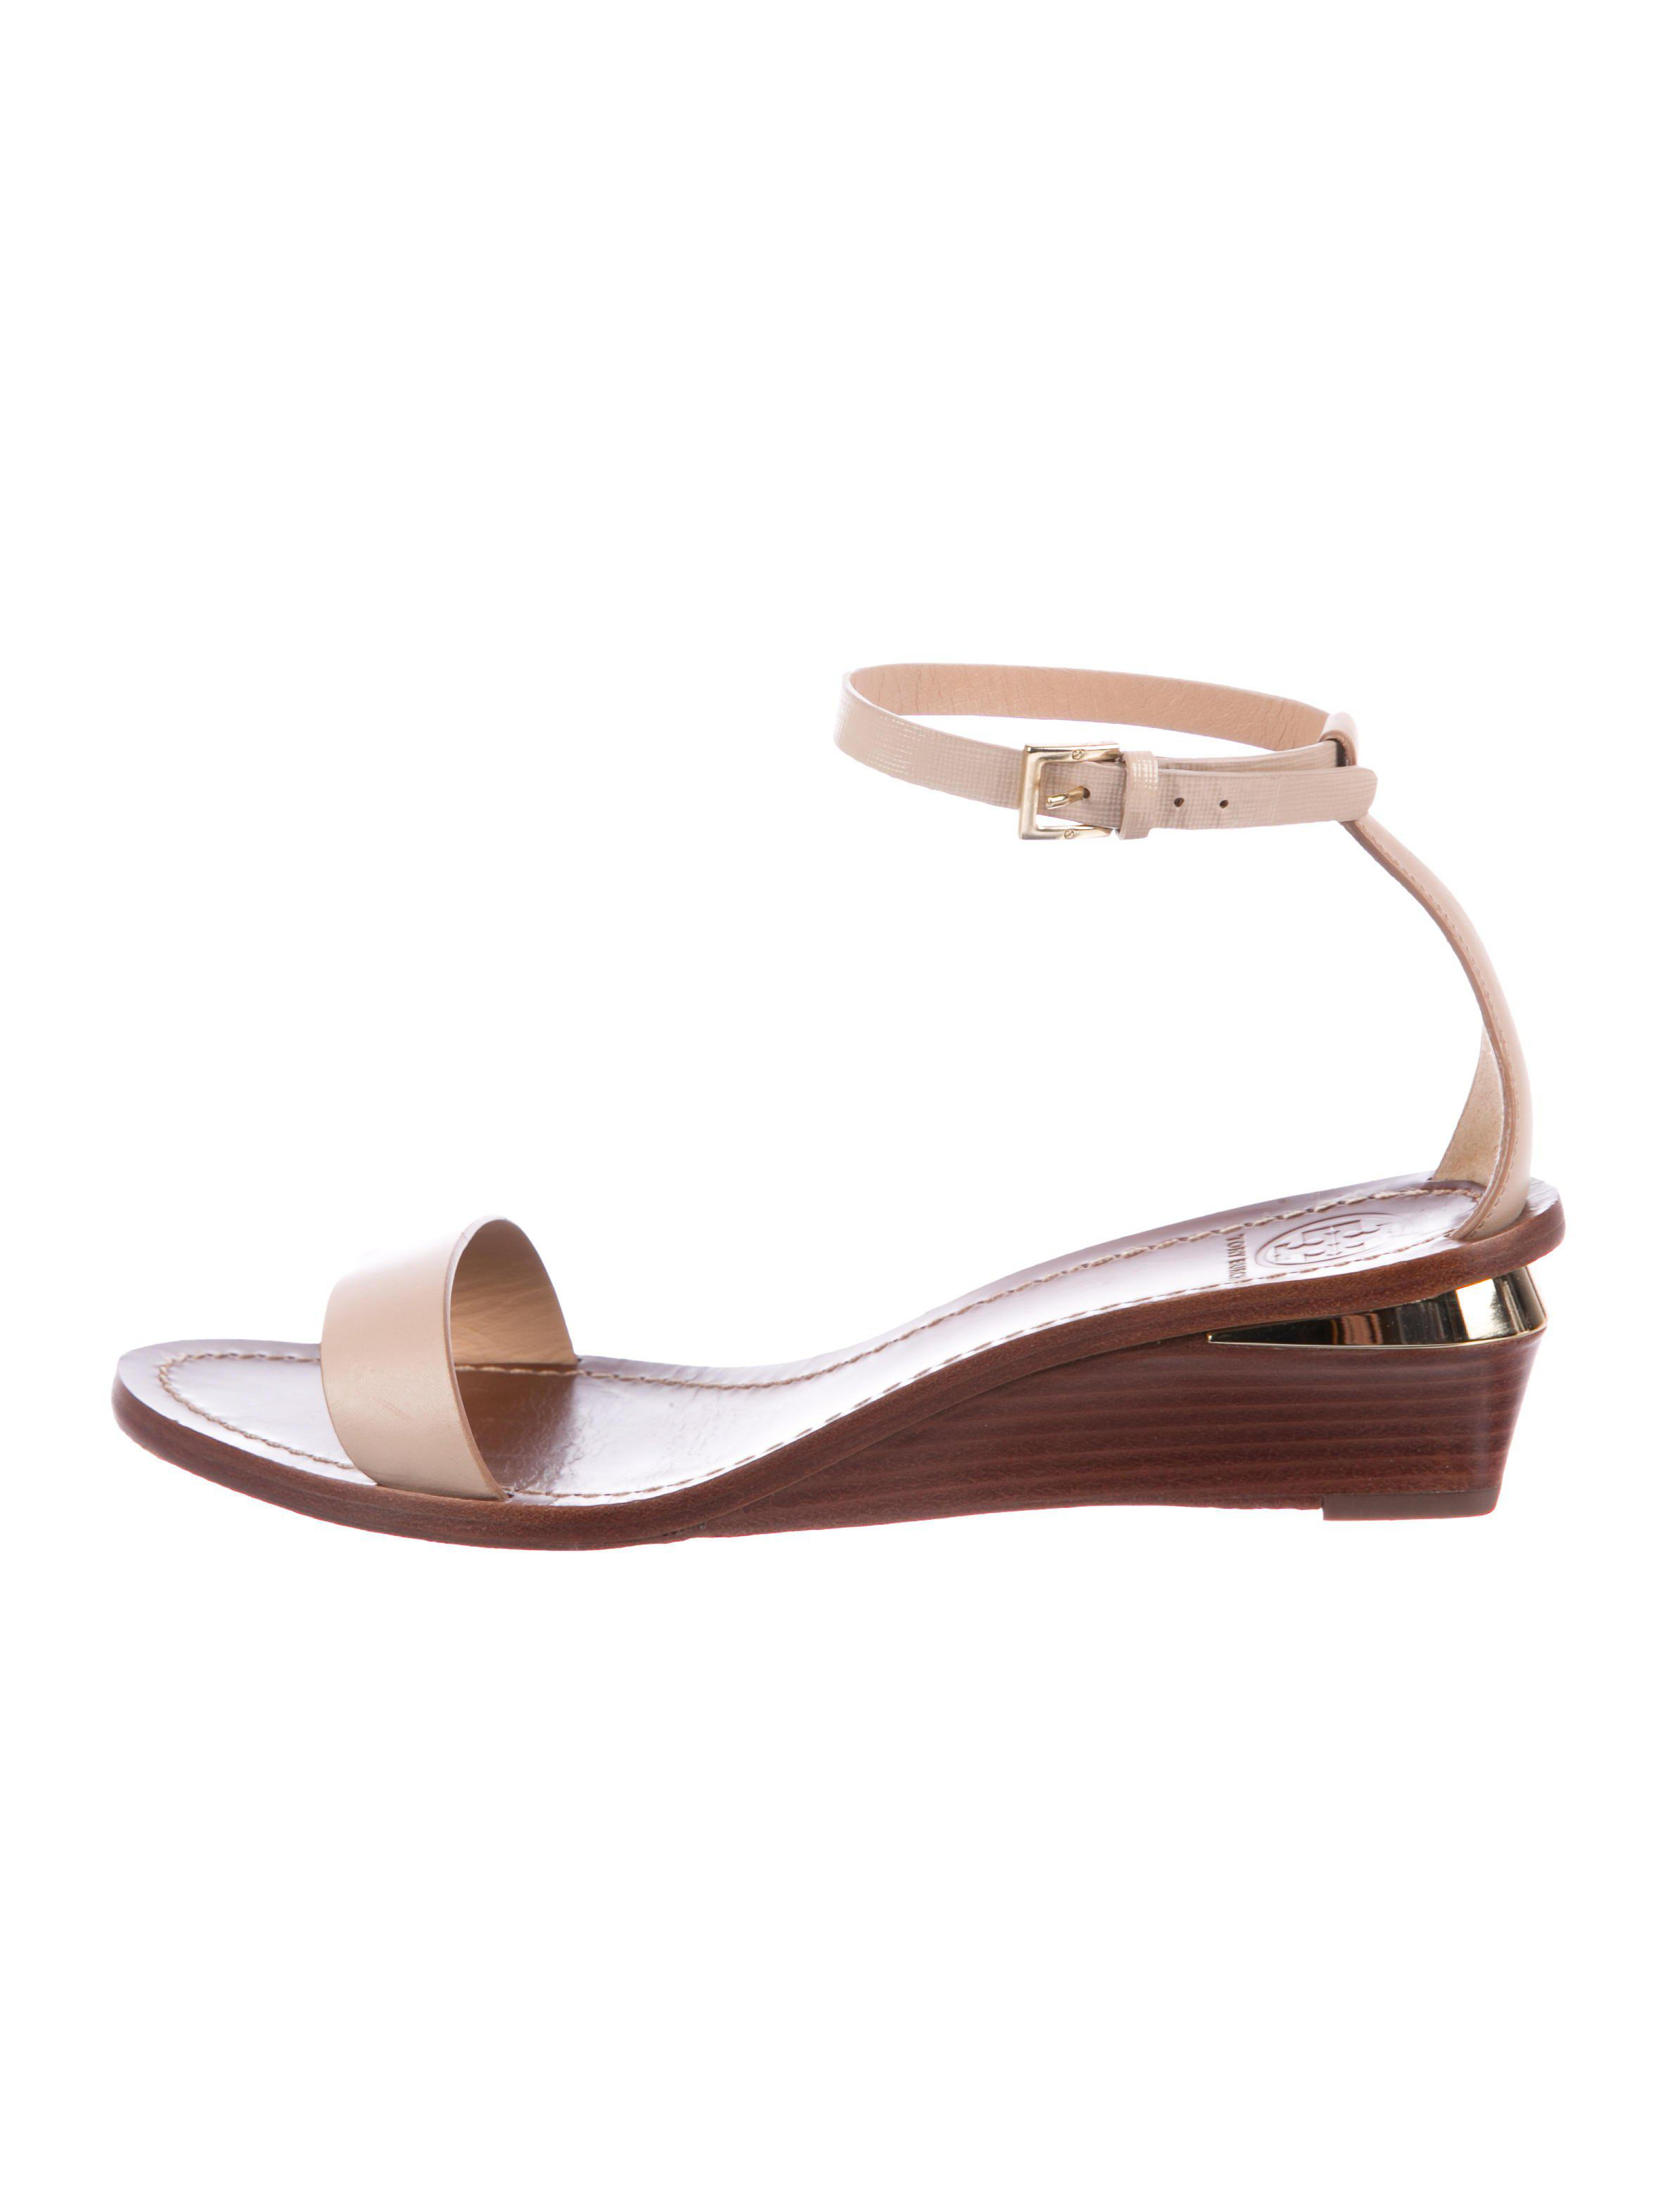 55283ccc762a Lyst - Tory Burch Leather Ankle-strap Wedges Nude in Metallic